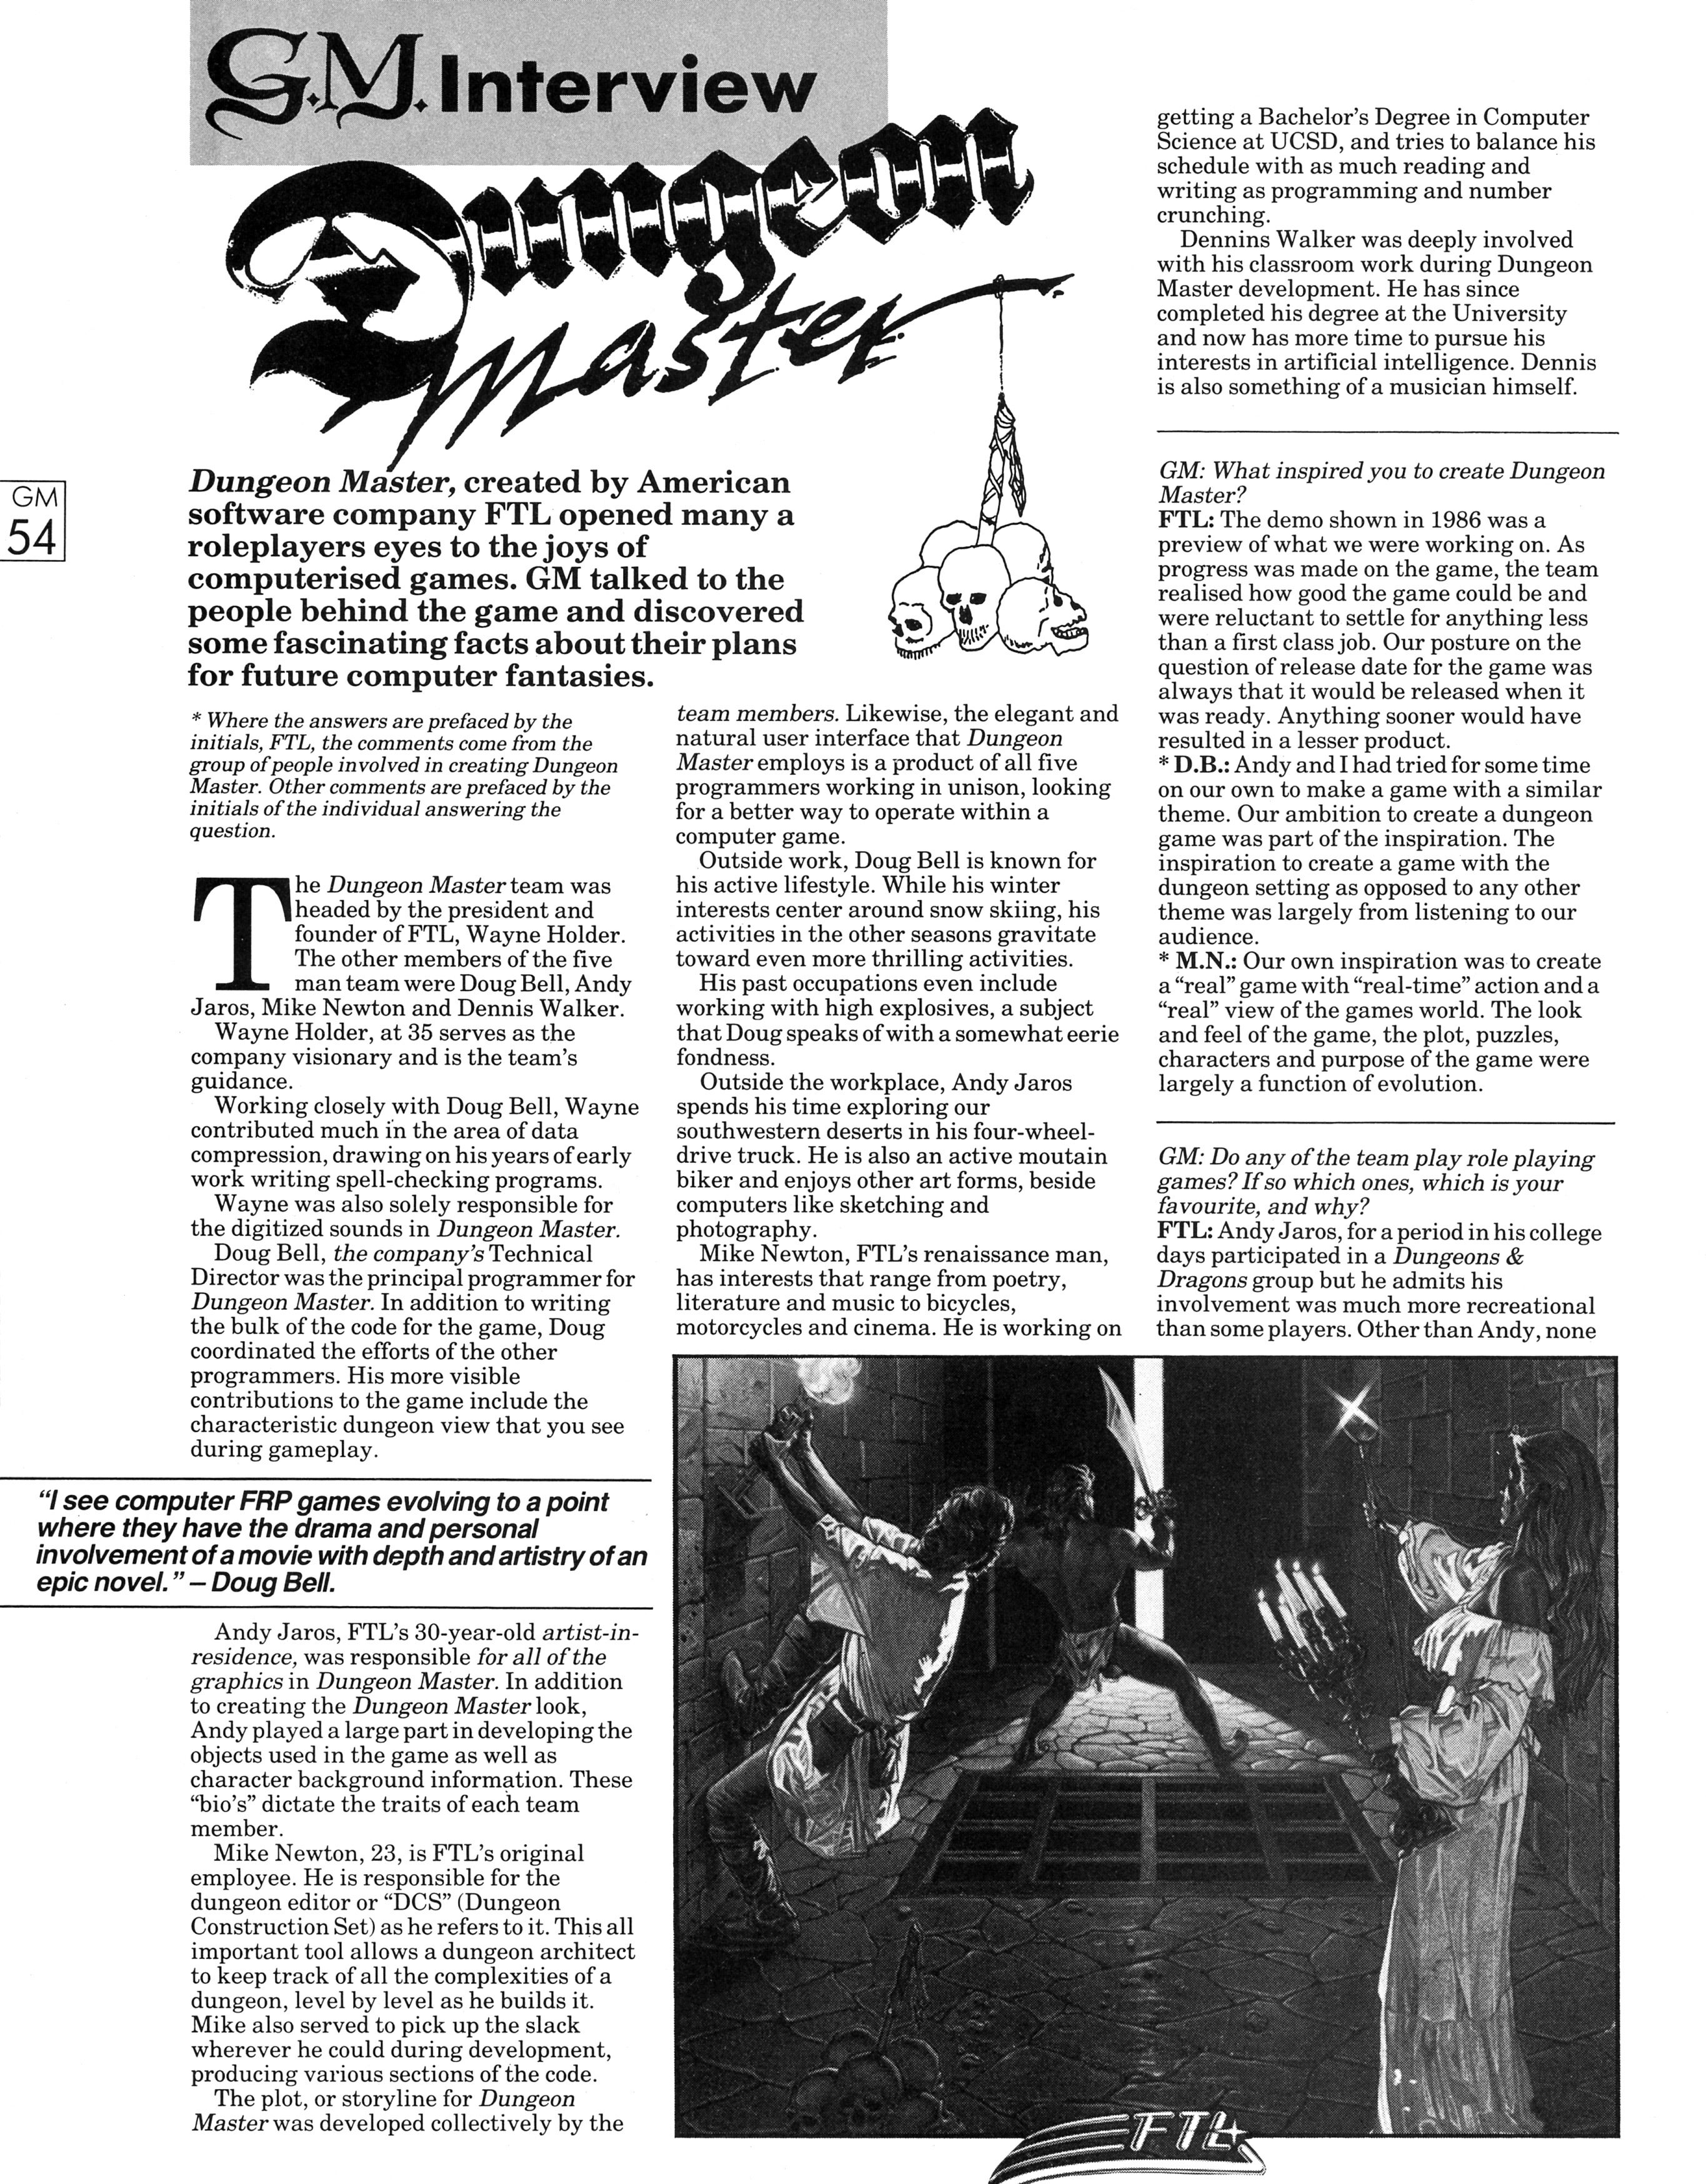 FTL Interview published in British magazine 'Game Master', Vol 1 No 3 November 1988, Page 54